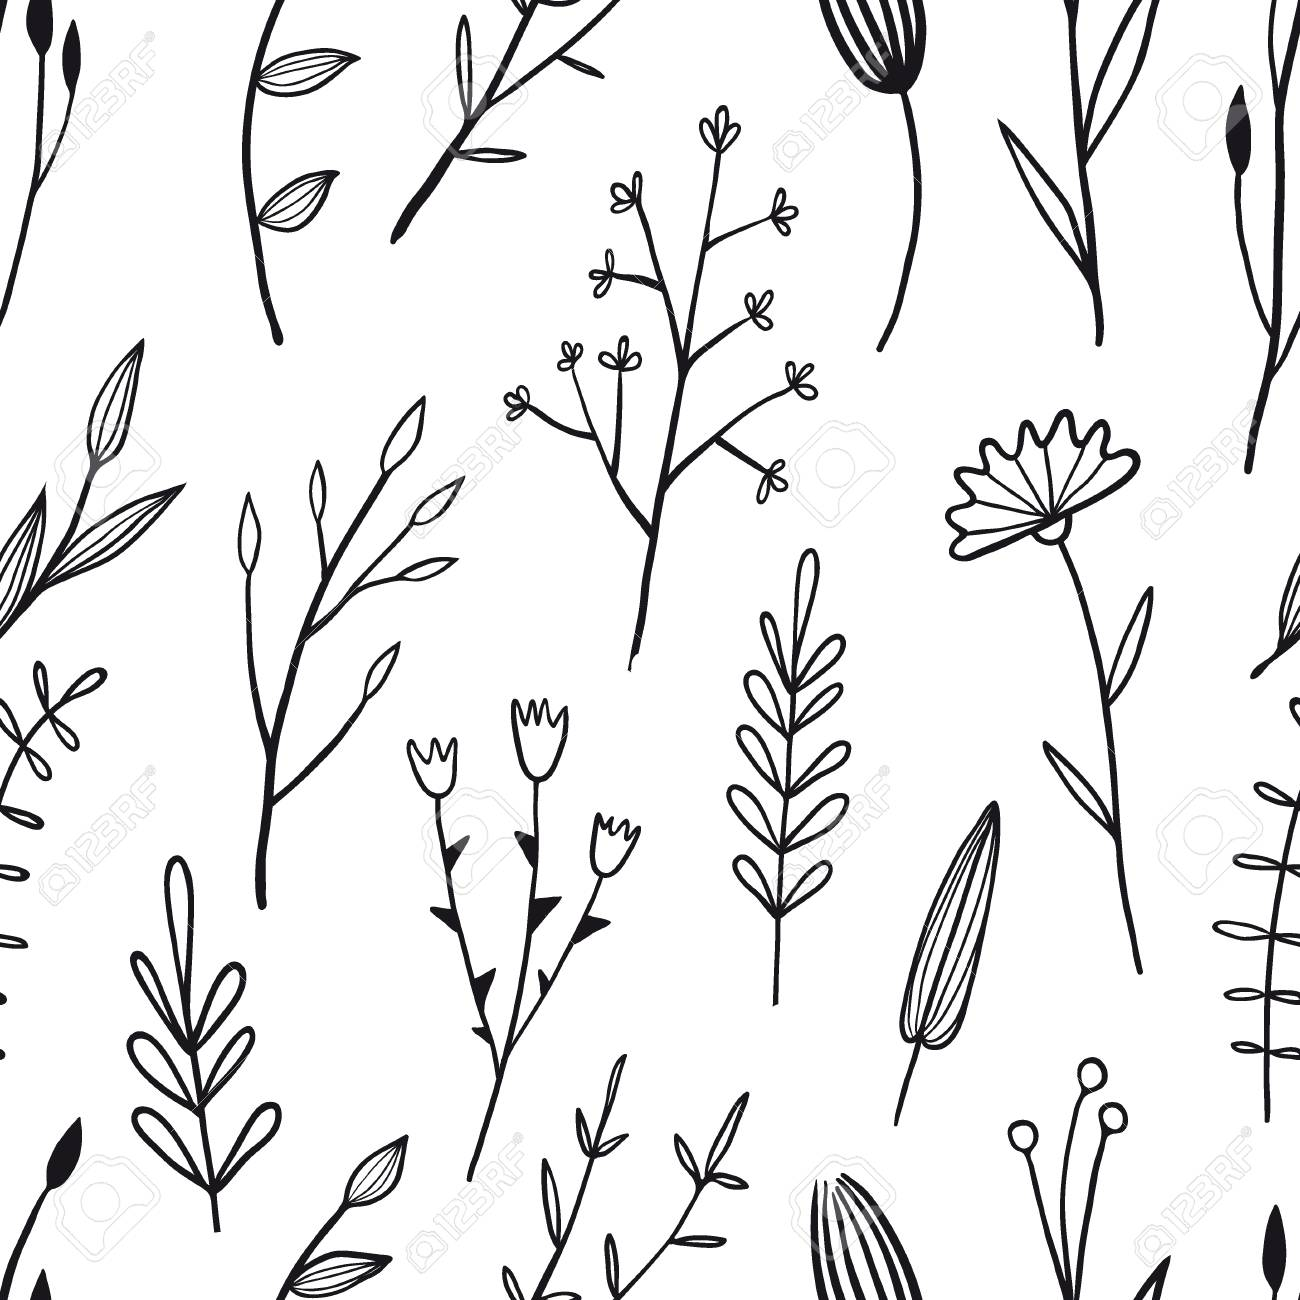 Flower simple seamless pattern graphic design for paper, textile..